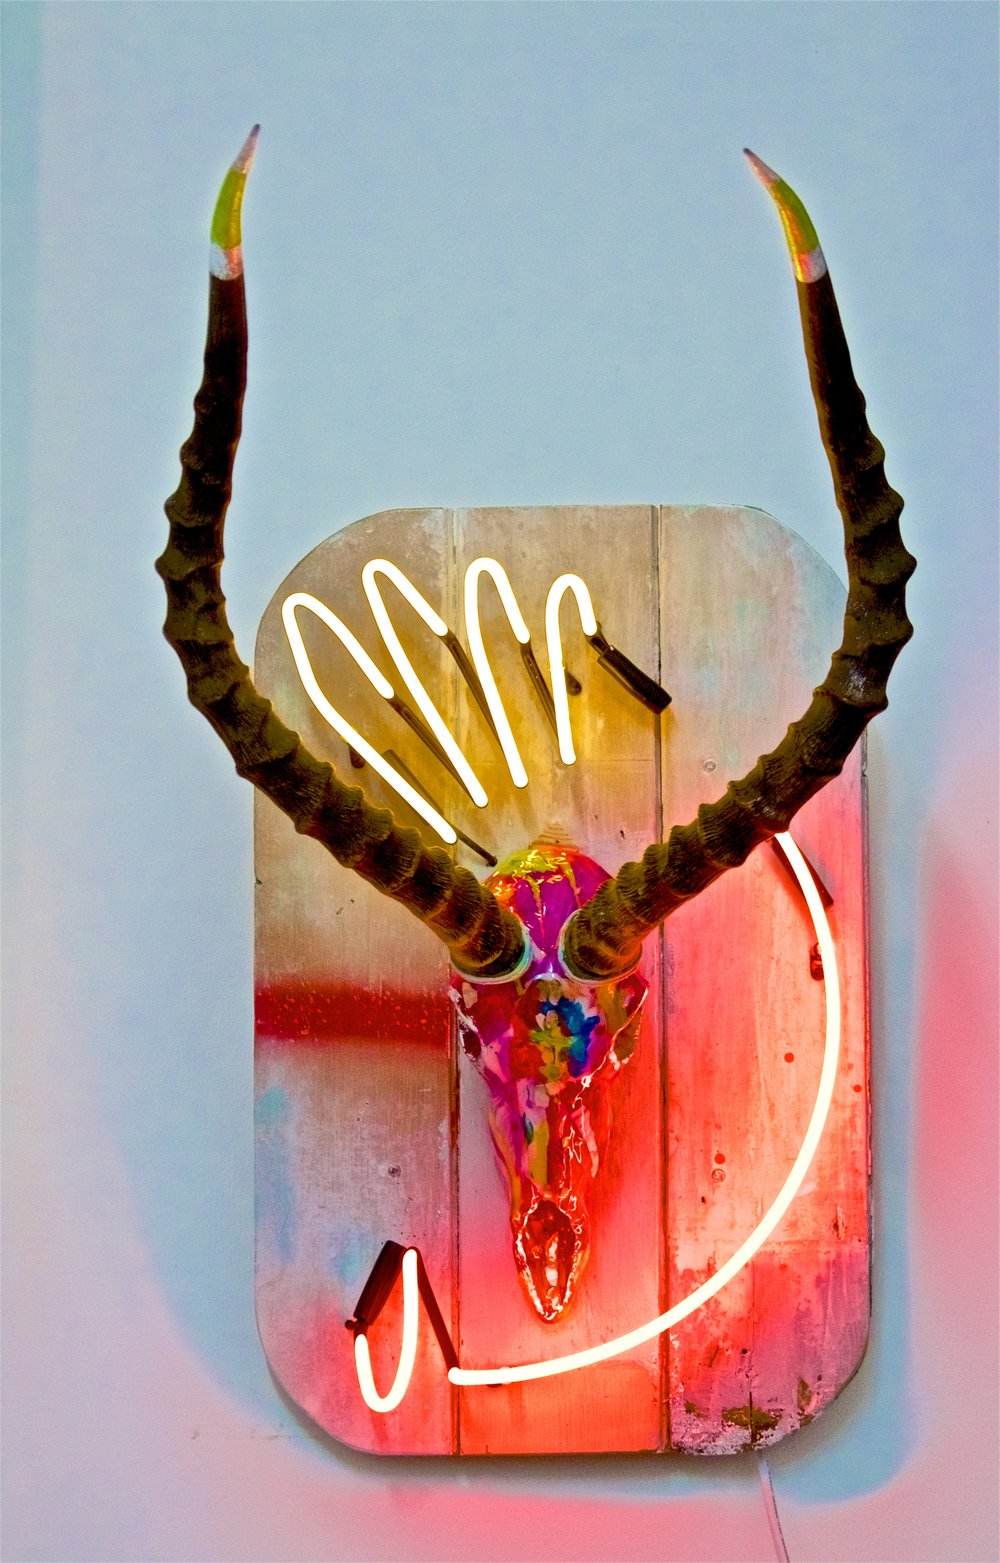 """AYO""  authentic antelope skull and horns, resin, acrylic and neon  65 x 43 cm 25 5/8 x 16 7/8 in"